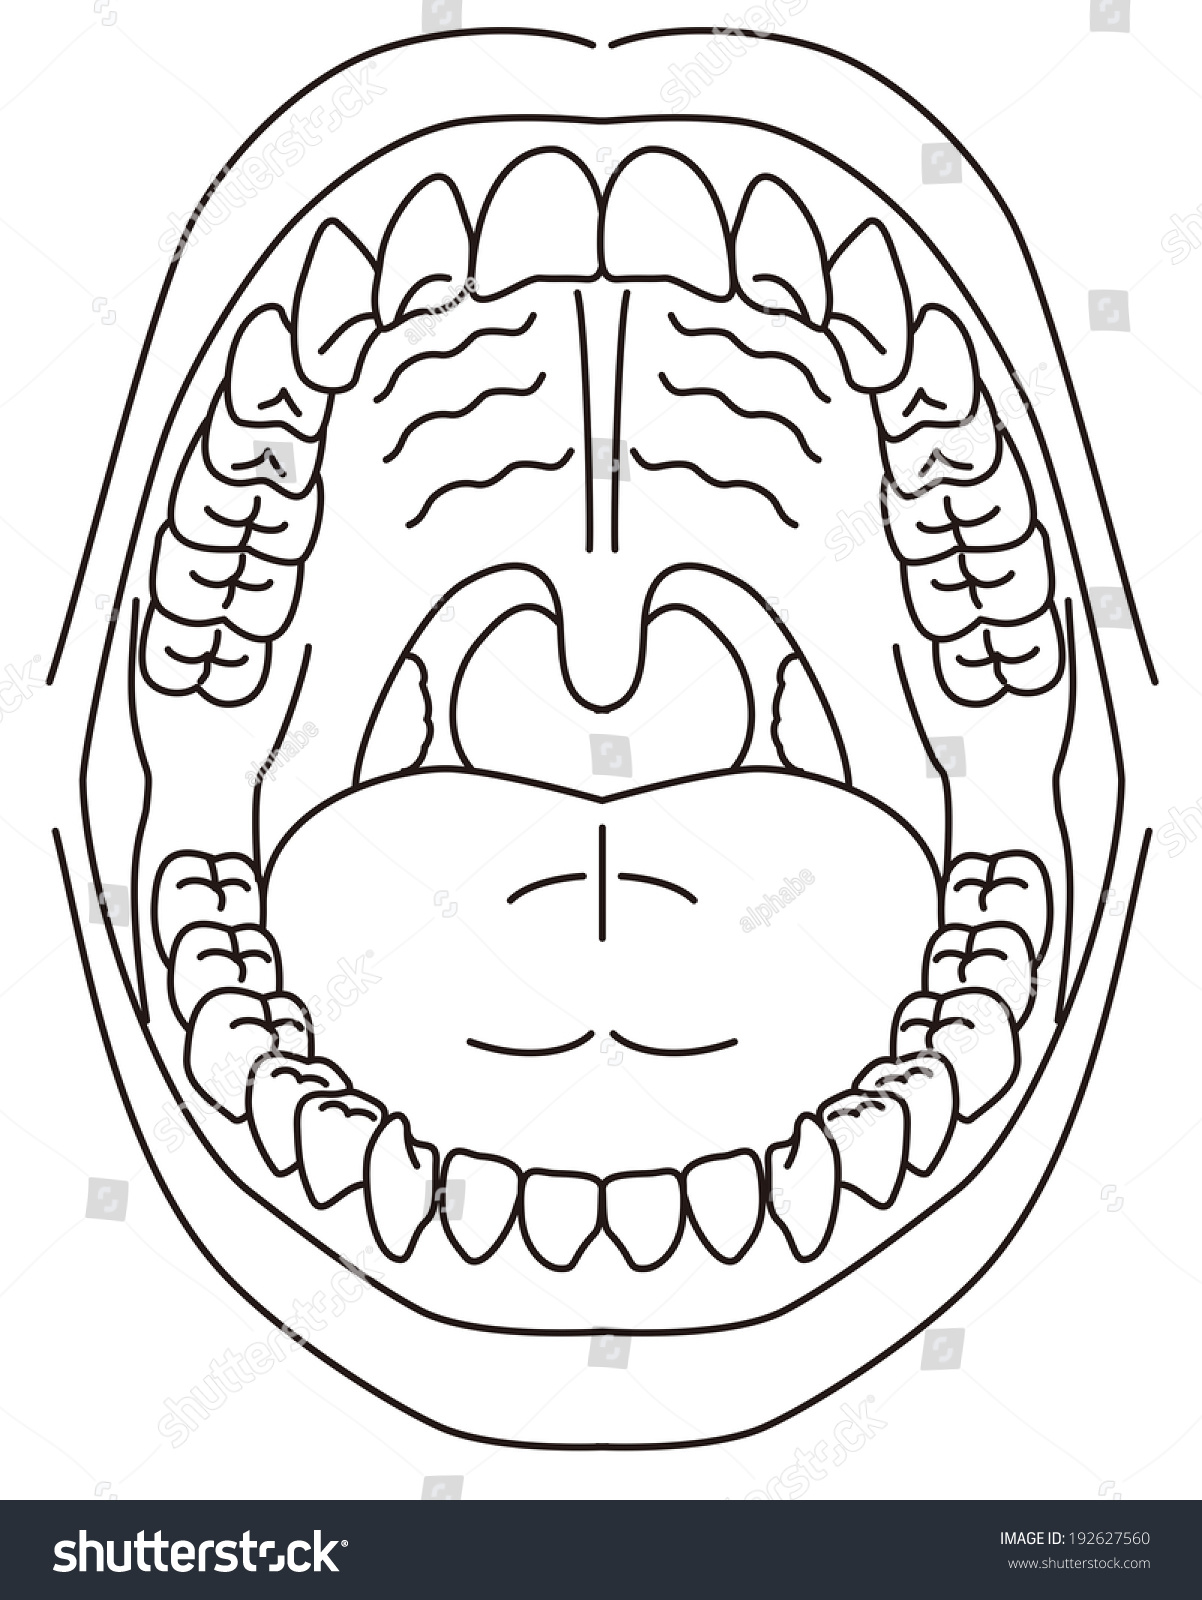 schematic diagram of the oral cavity stock vector illustration  : oral cavity diagram - findchart.co